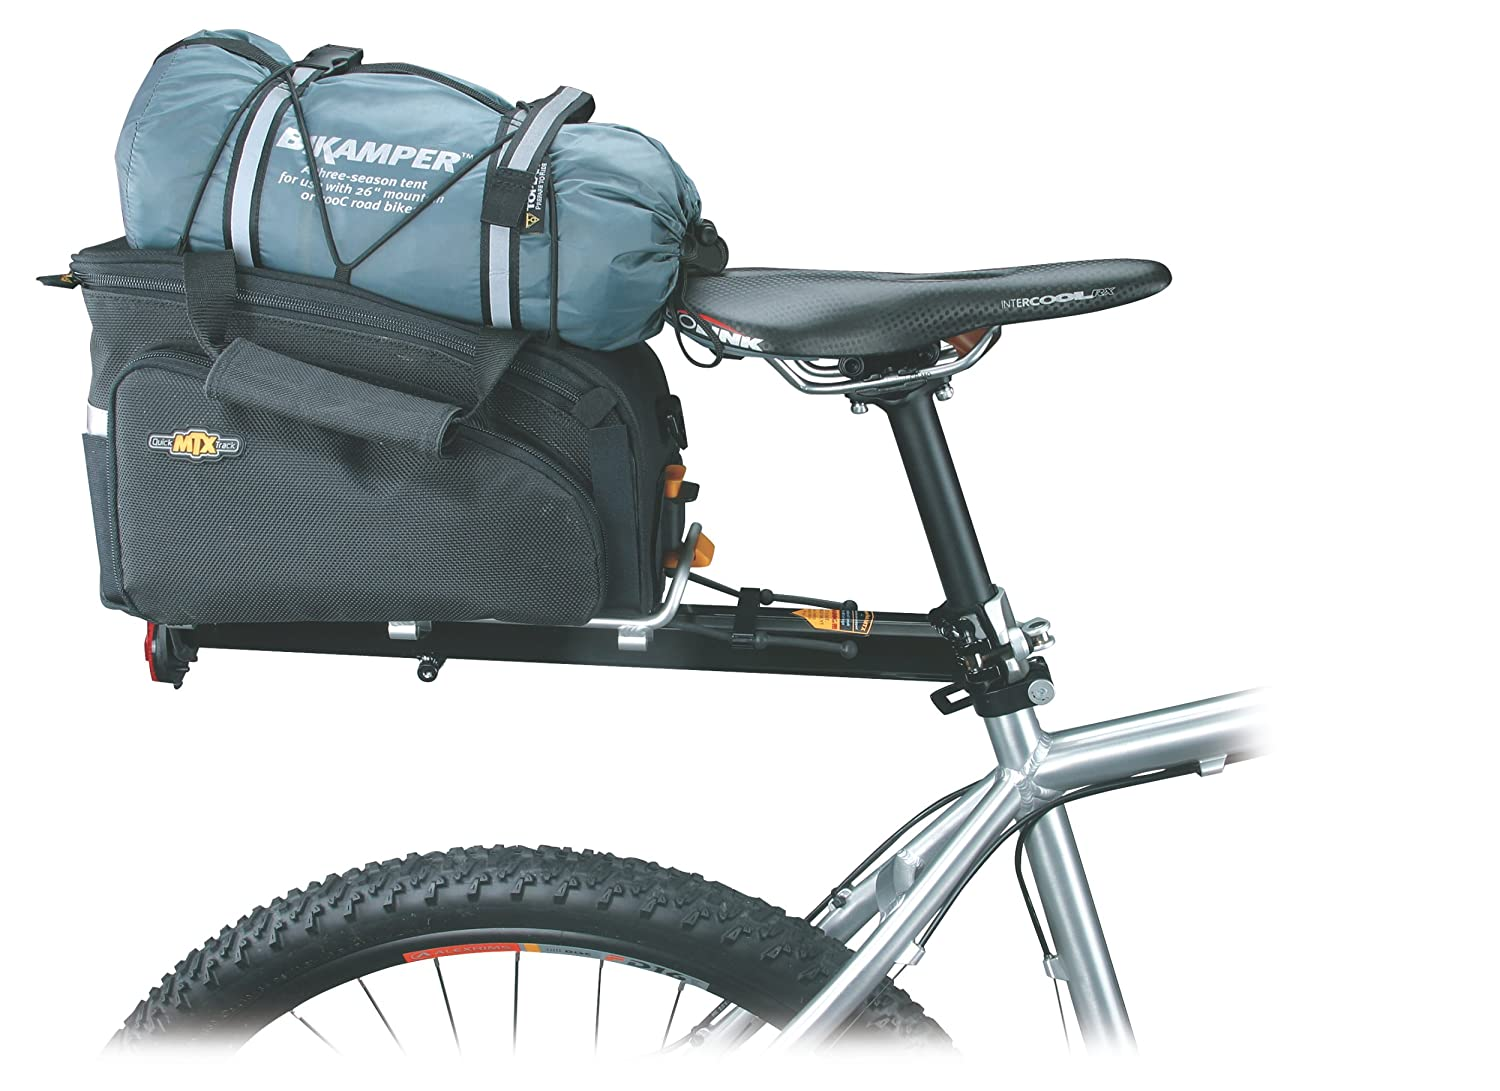 Topeak Bikamper One Person Bicycling Tent